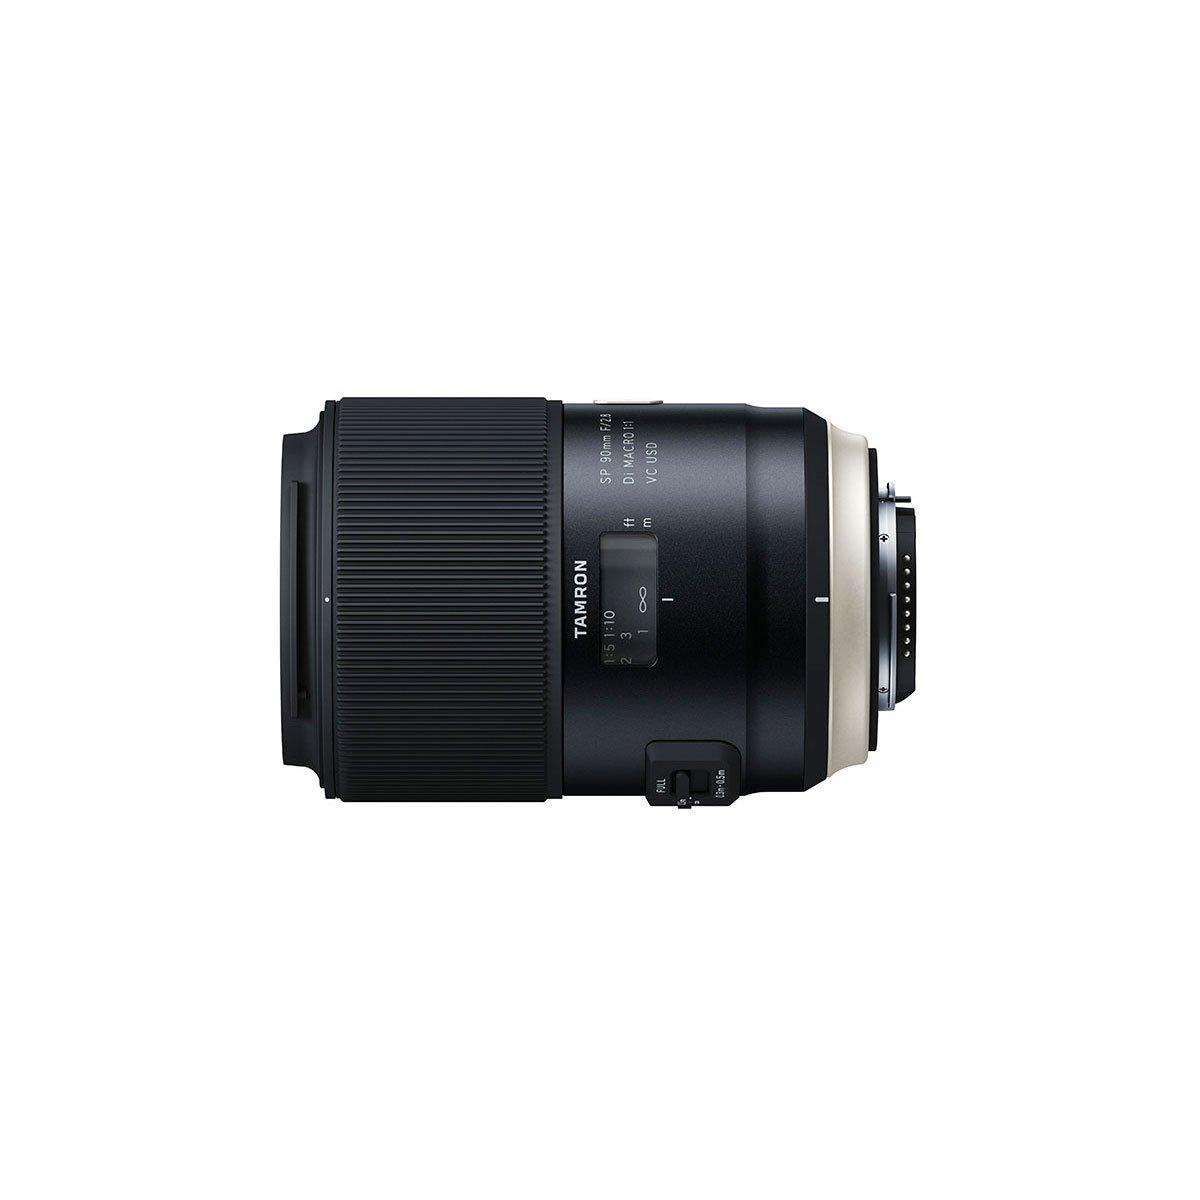 Tamron SP 90MM F/2,8 DI VC USD – Nikon